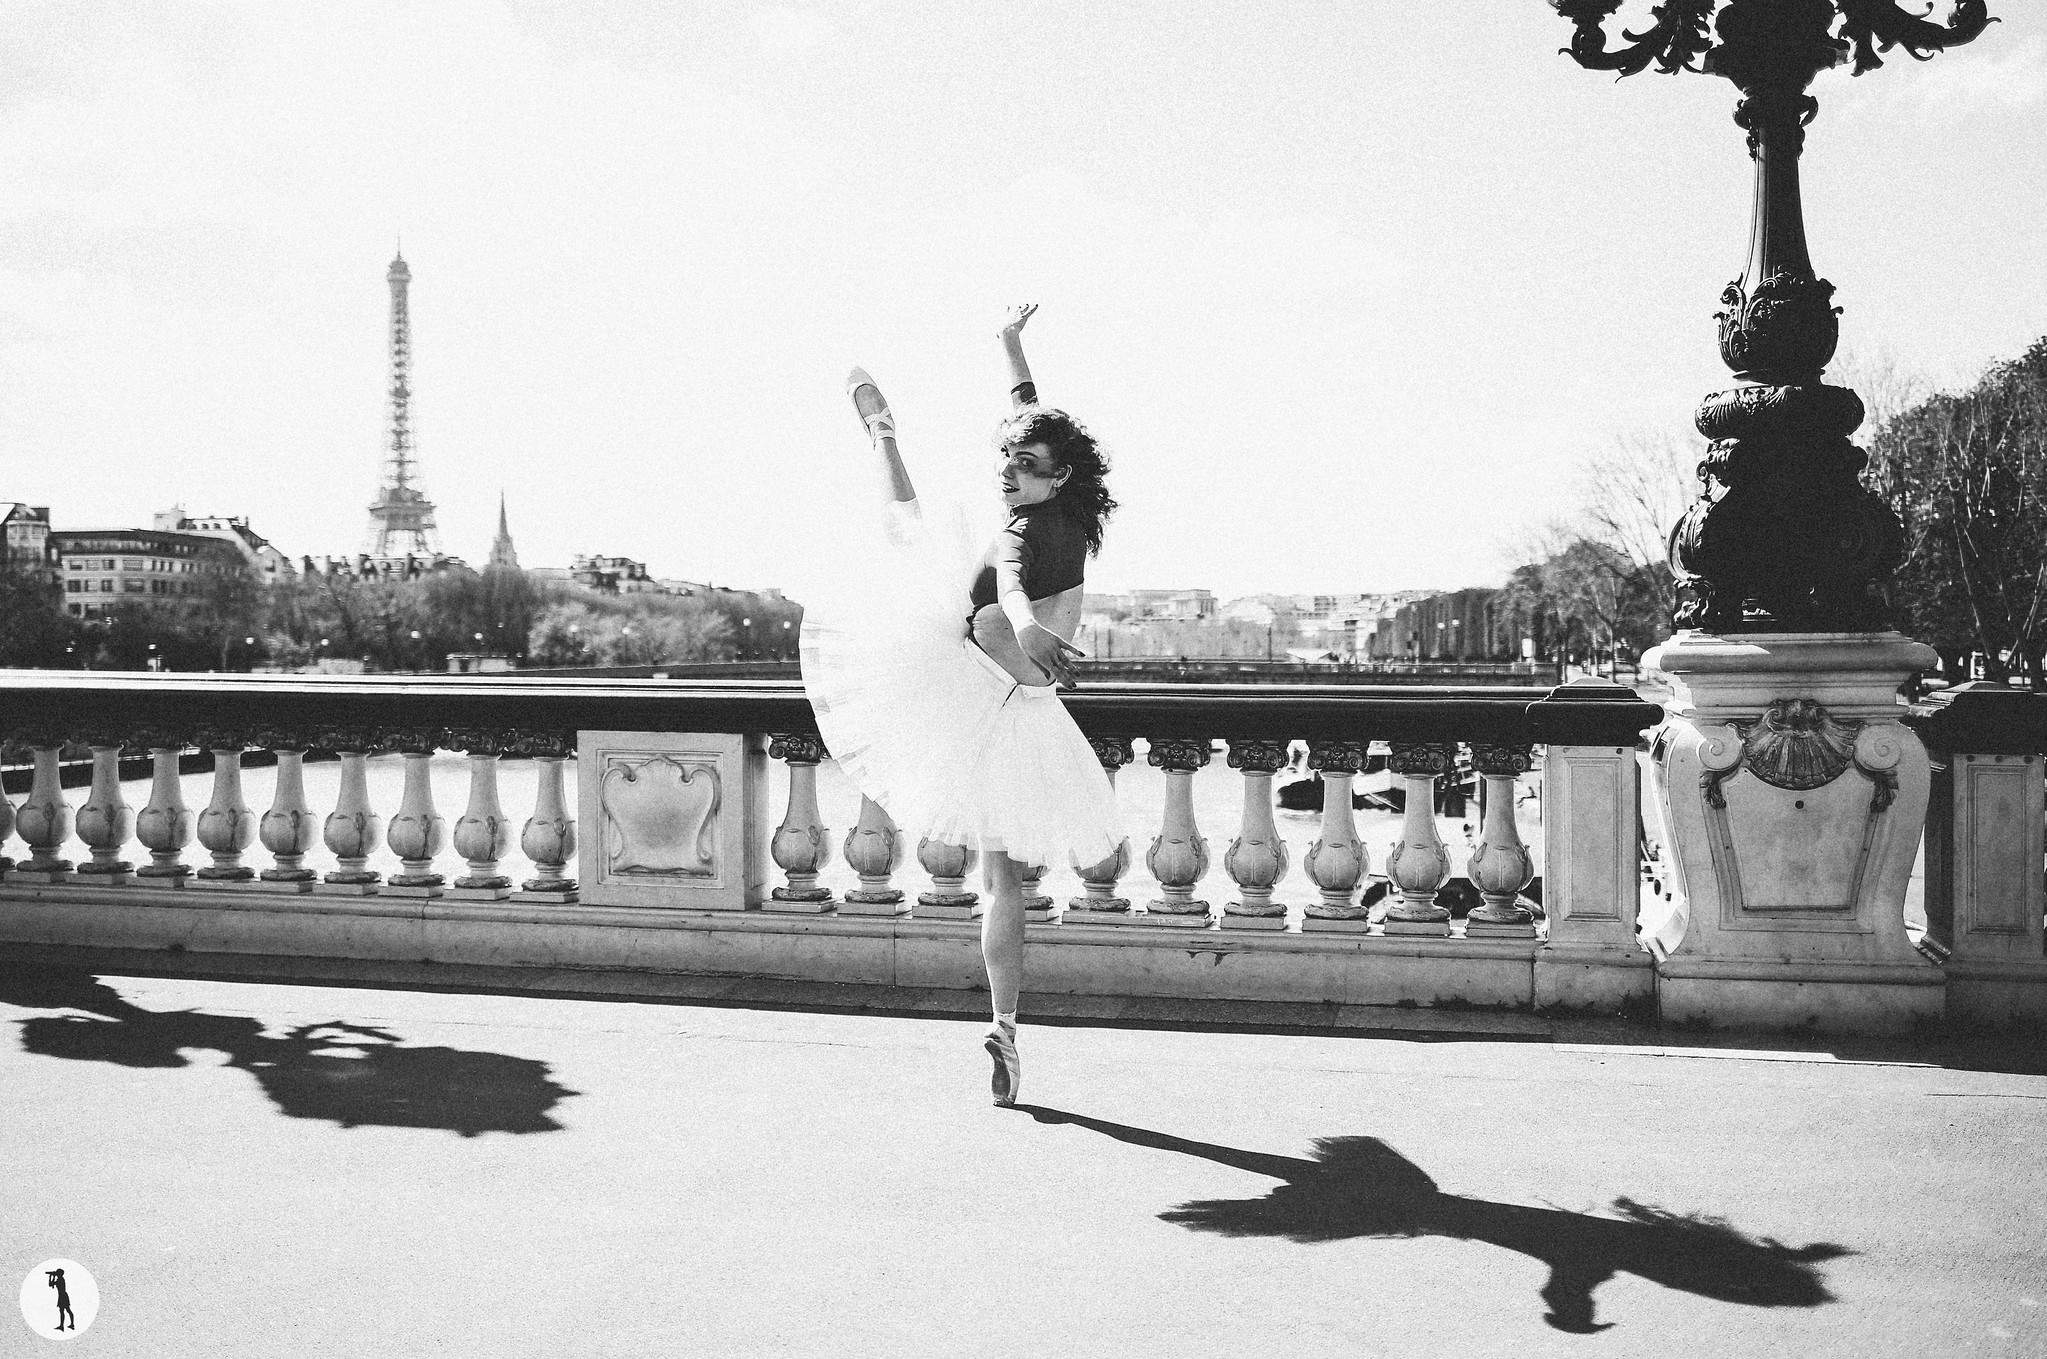 Ballet dancers from Opera de Paris School